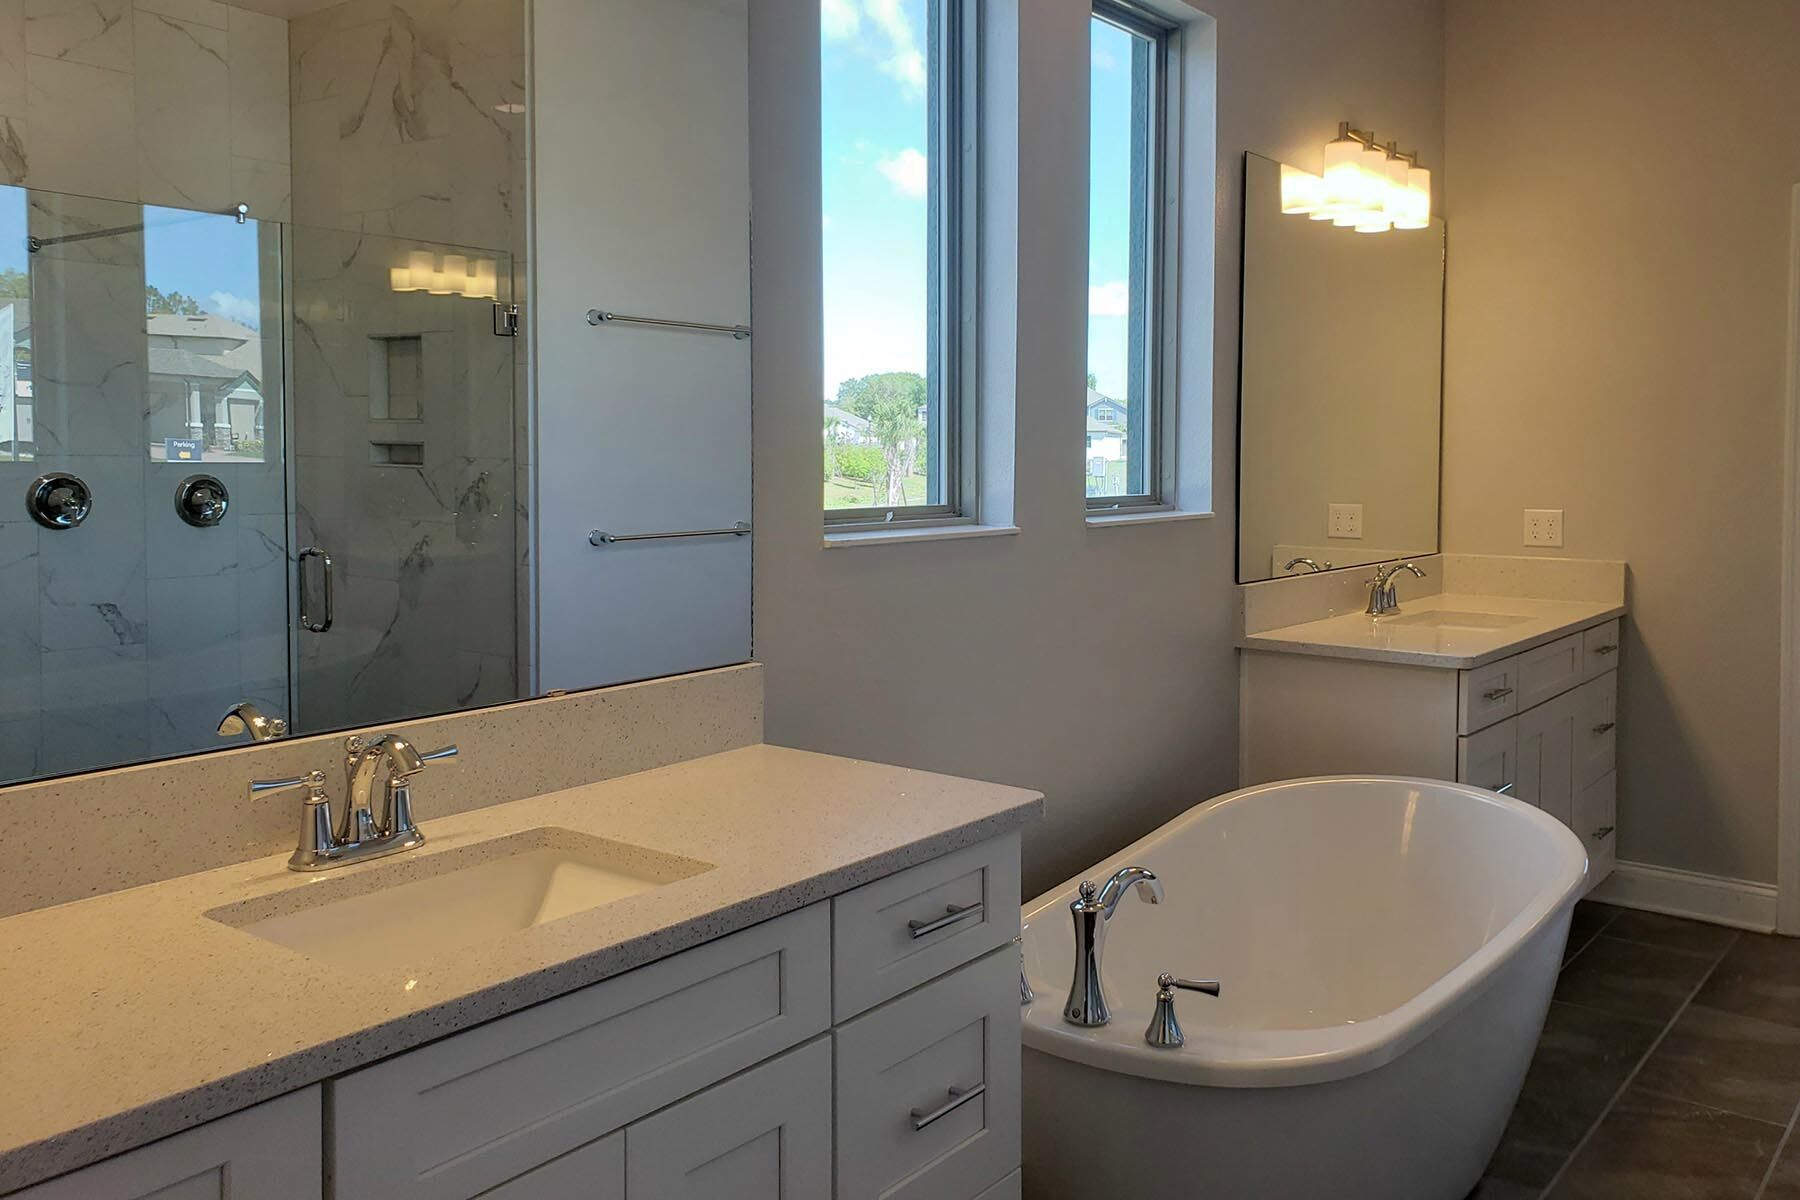 Bathroom featured in the Savannah II By M/I Homes in Orlando, FL